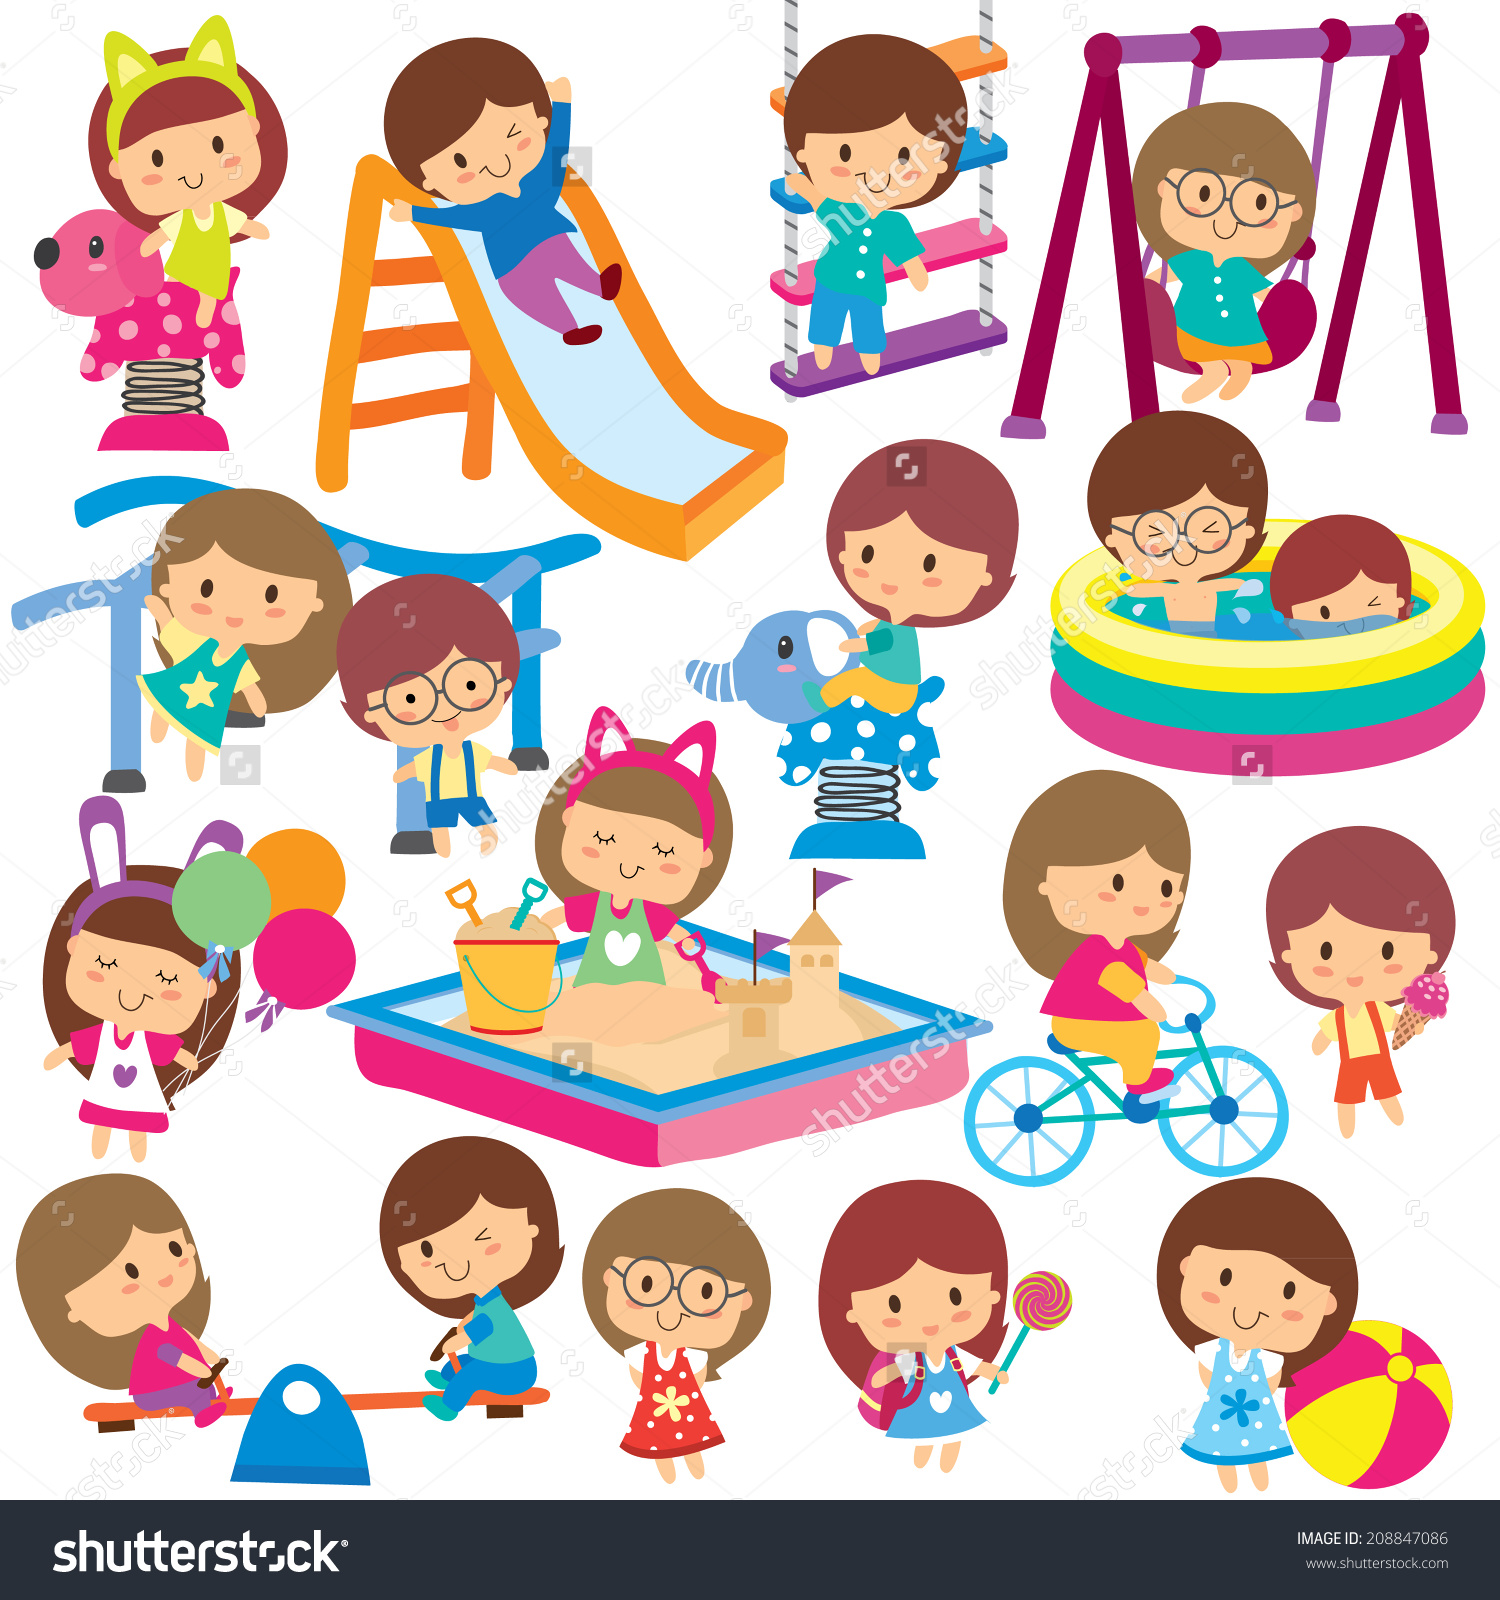 Free outdoor play cliparts. Outside clipart childrens park